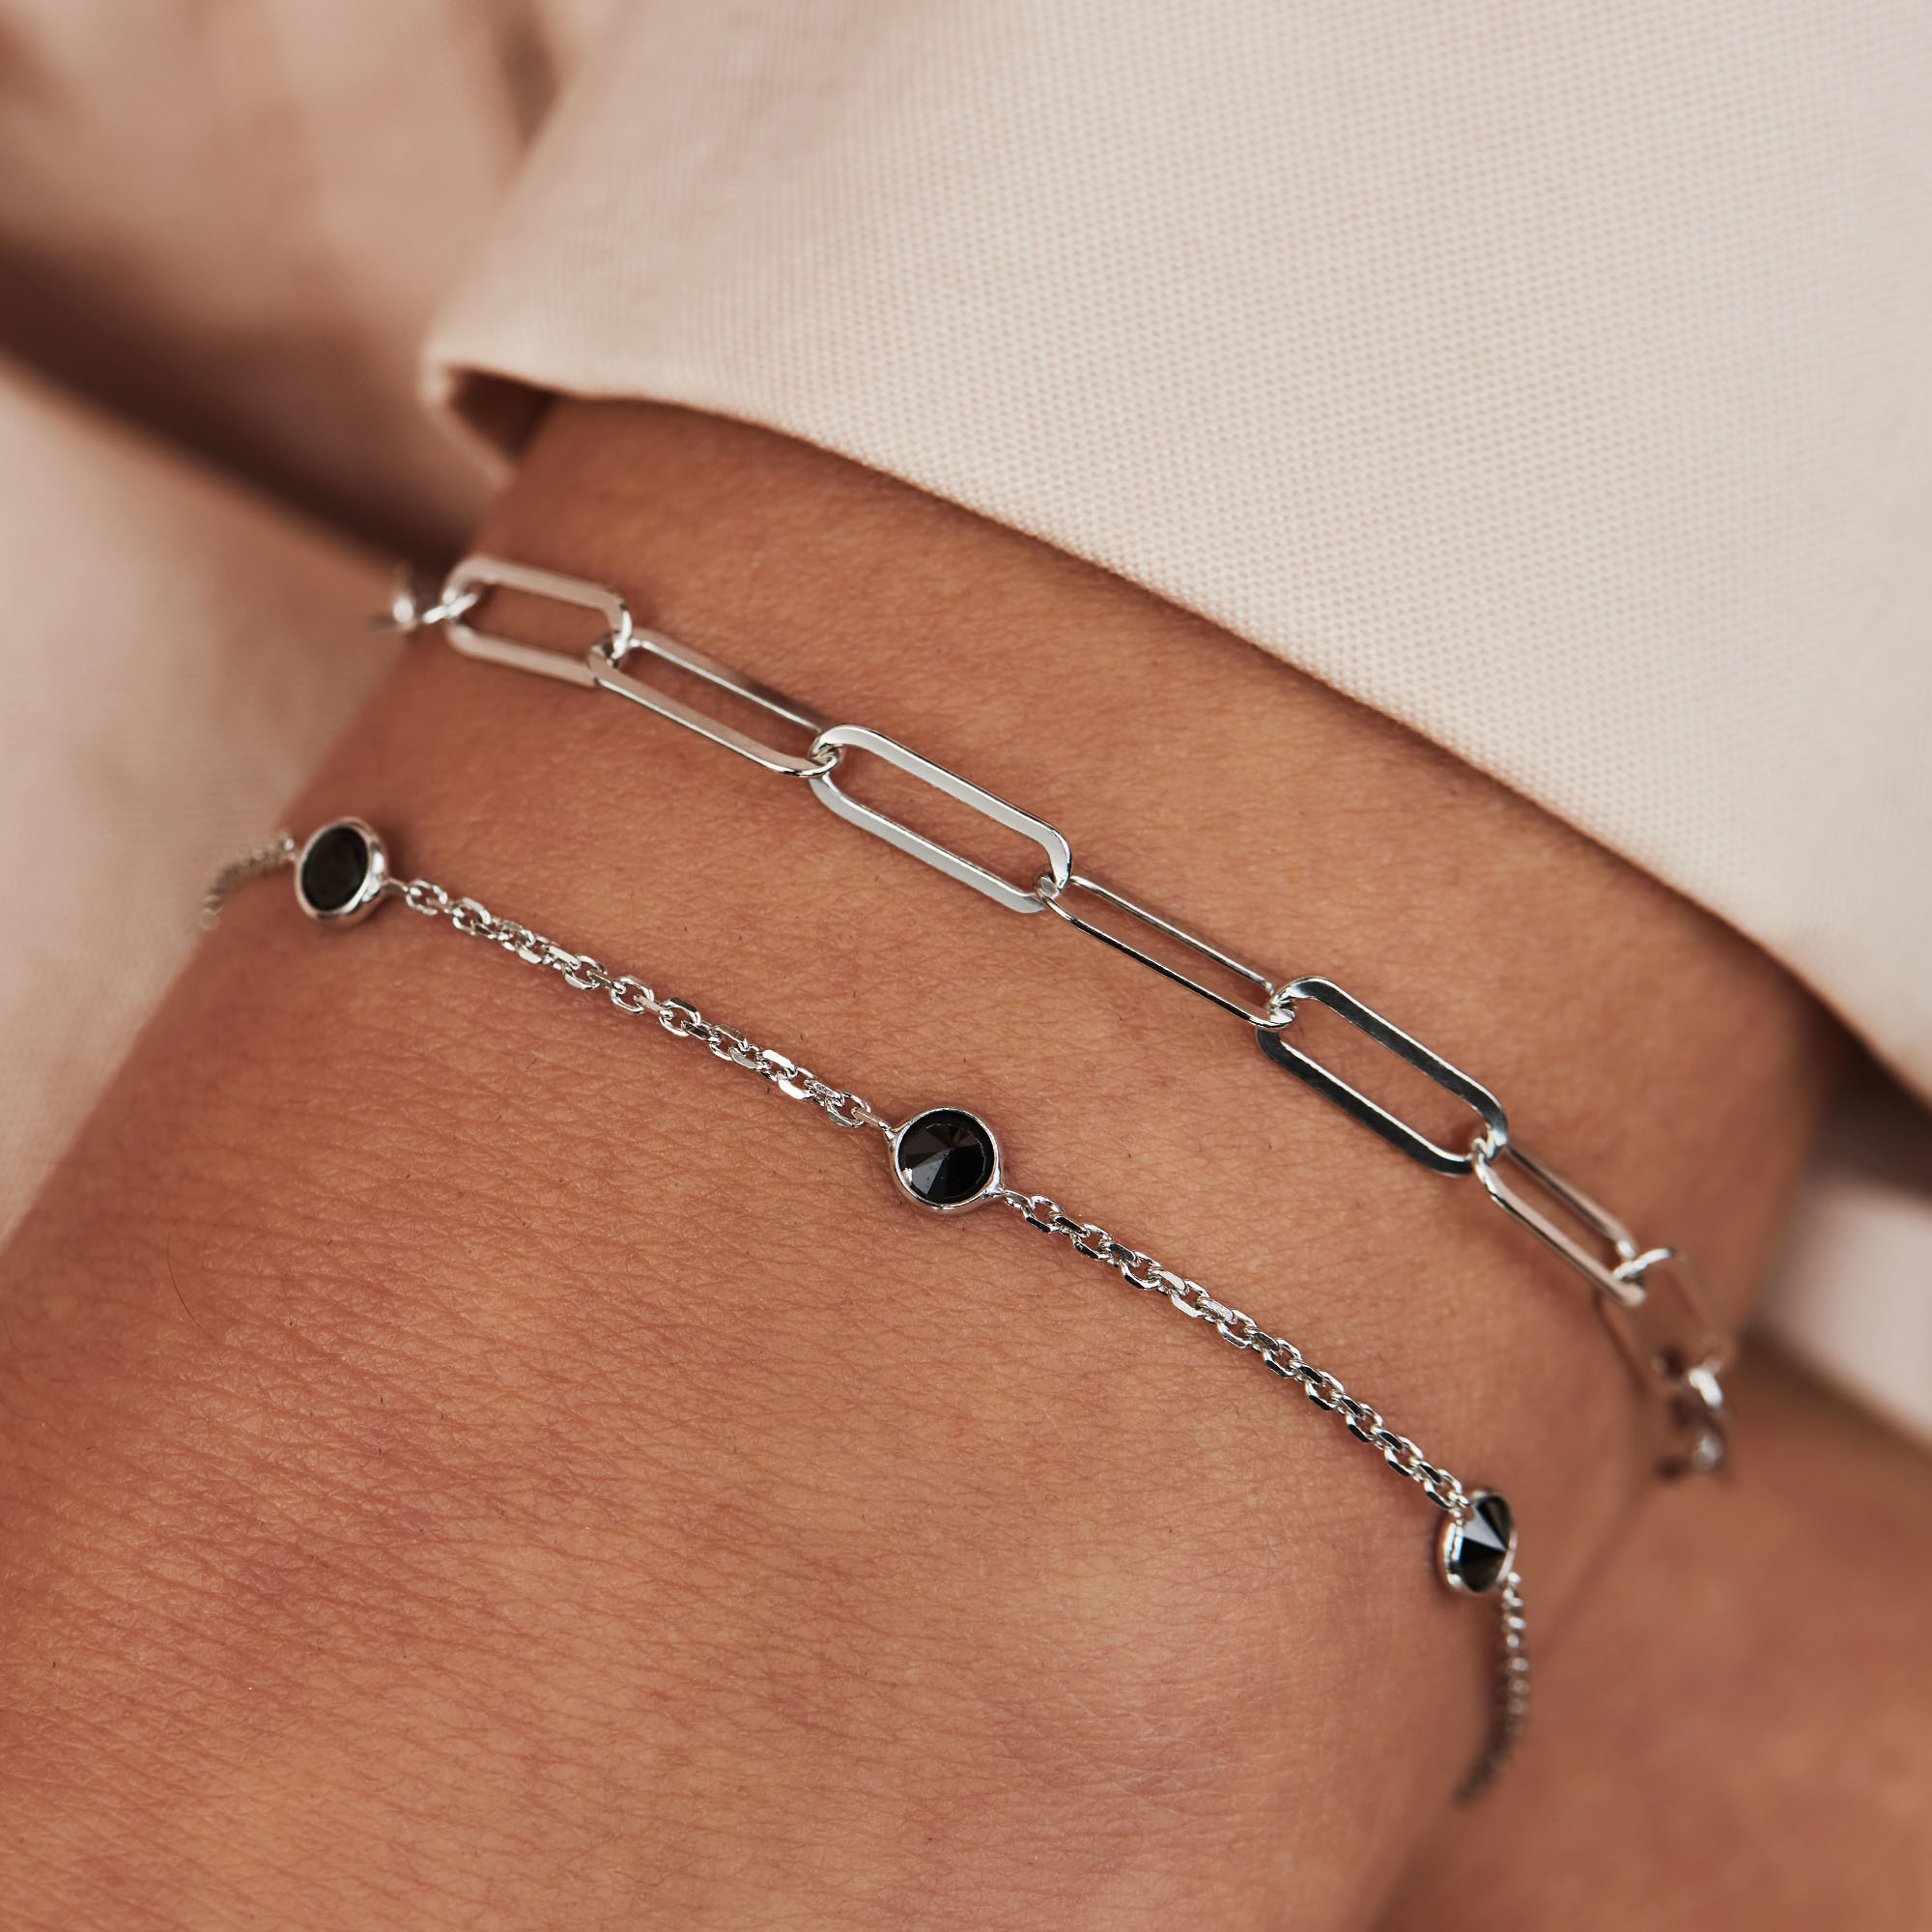 Selected Jewels Emma Jolie 925 Sterling Silber Armband